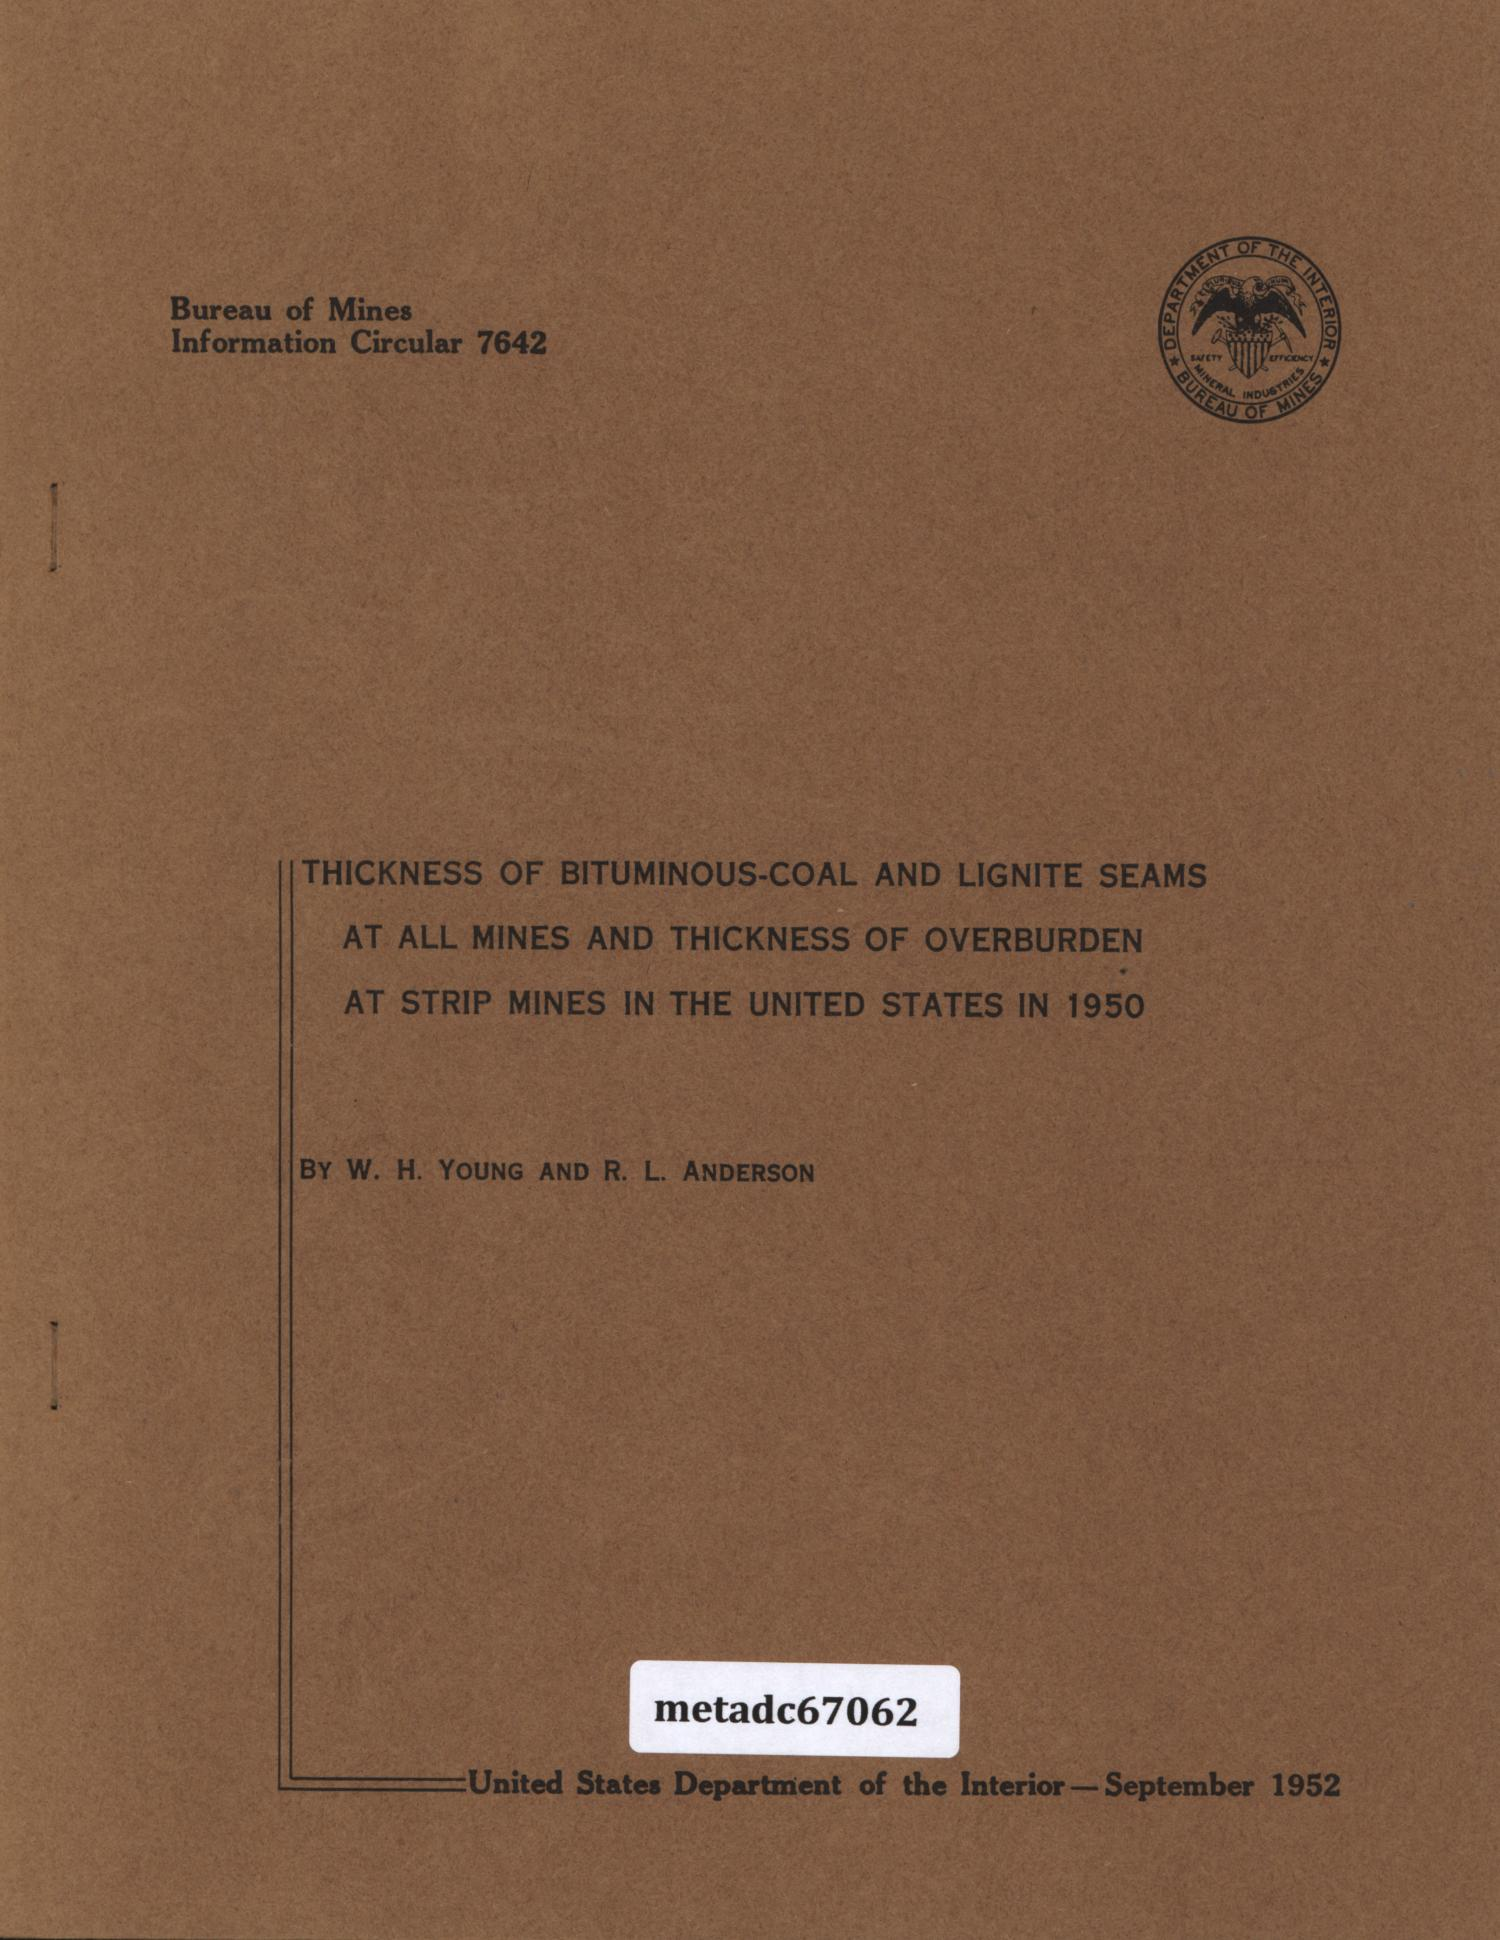 Thickness of Bituminous-Coal and Lignite Seams at All Mines and Thickness of Overburden at Strip Mines in the United States in 1950                                                                                                      Front Cover